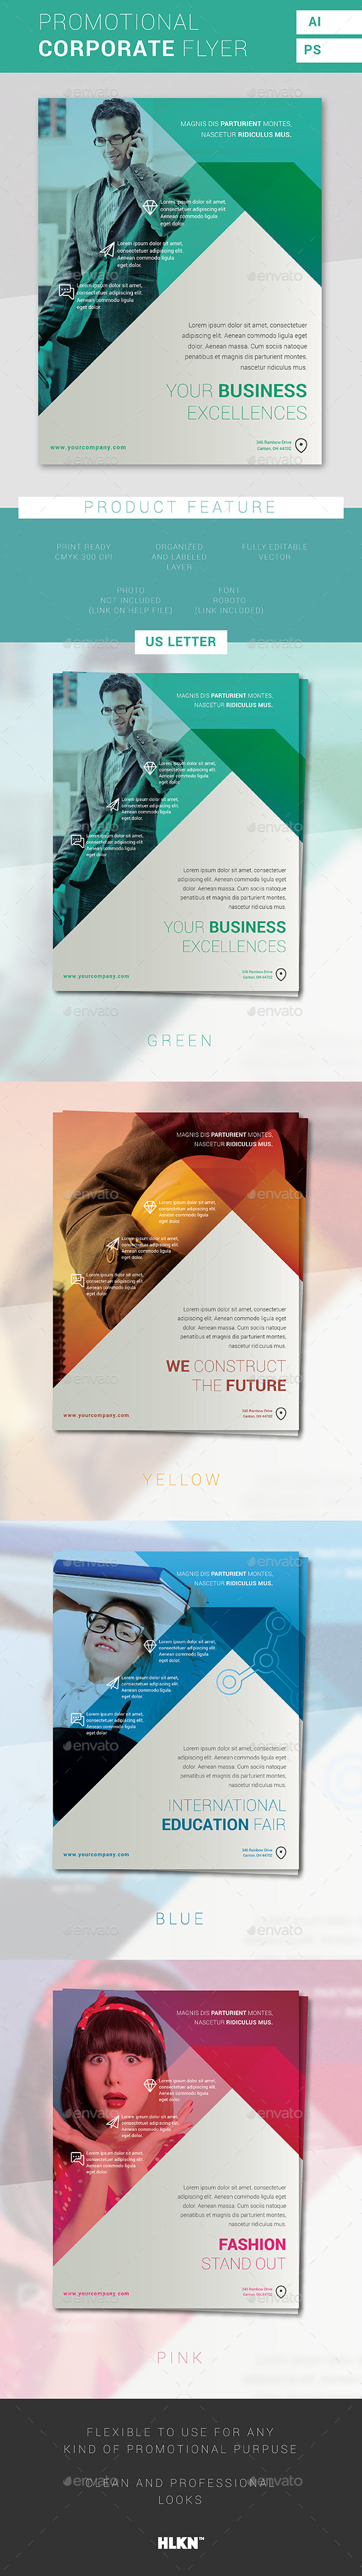 Promotional Corporate Flyer - Corporate Flyers